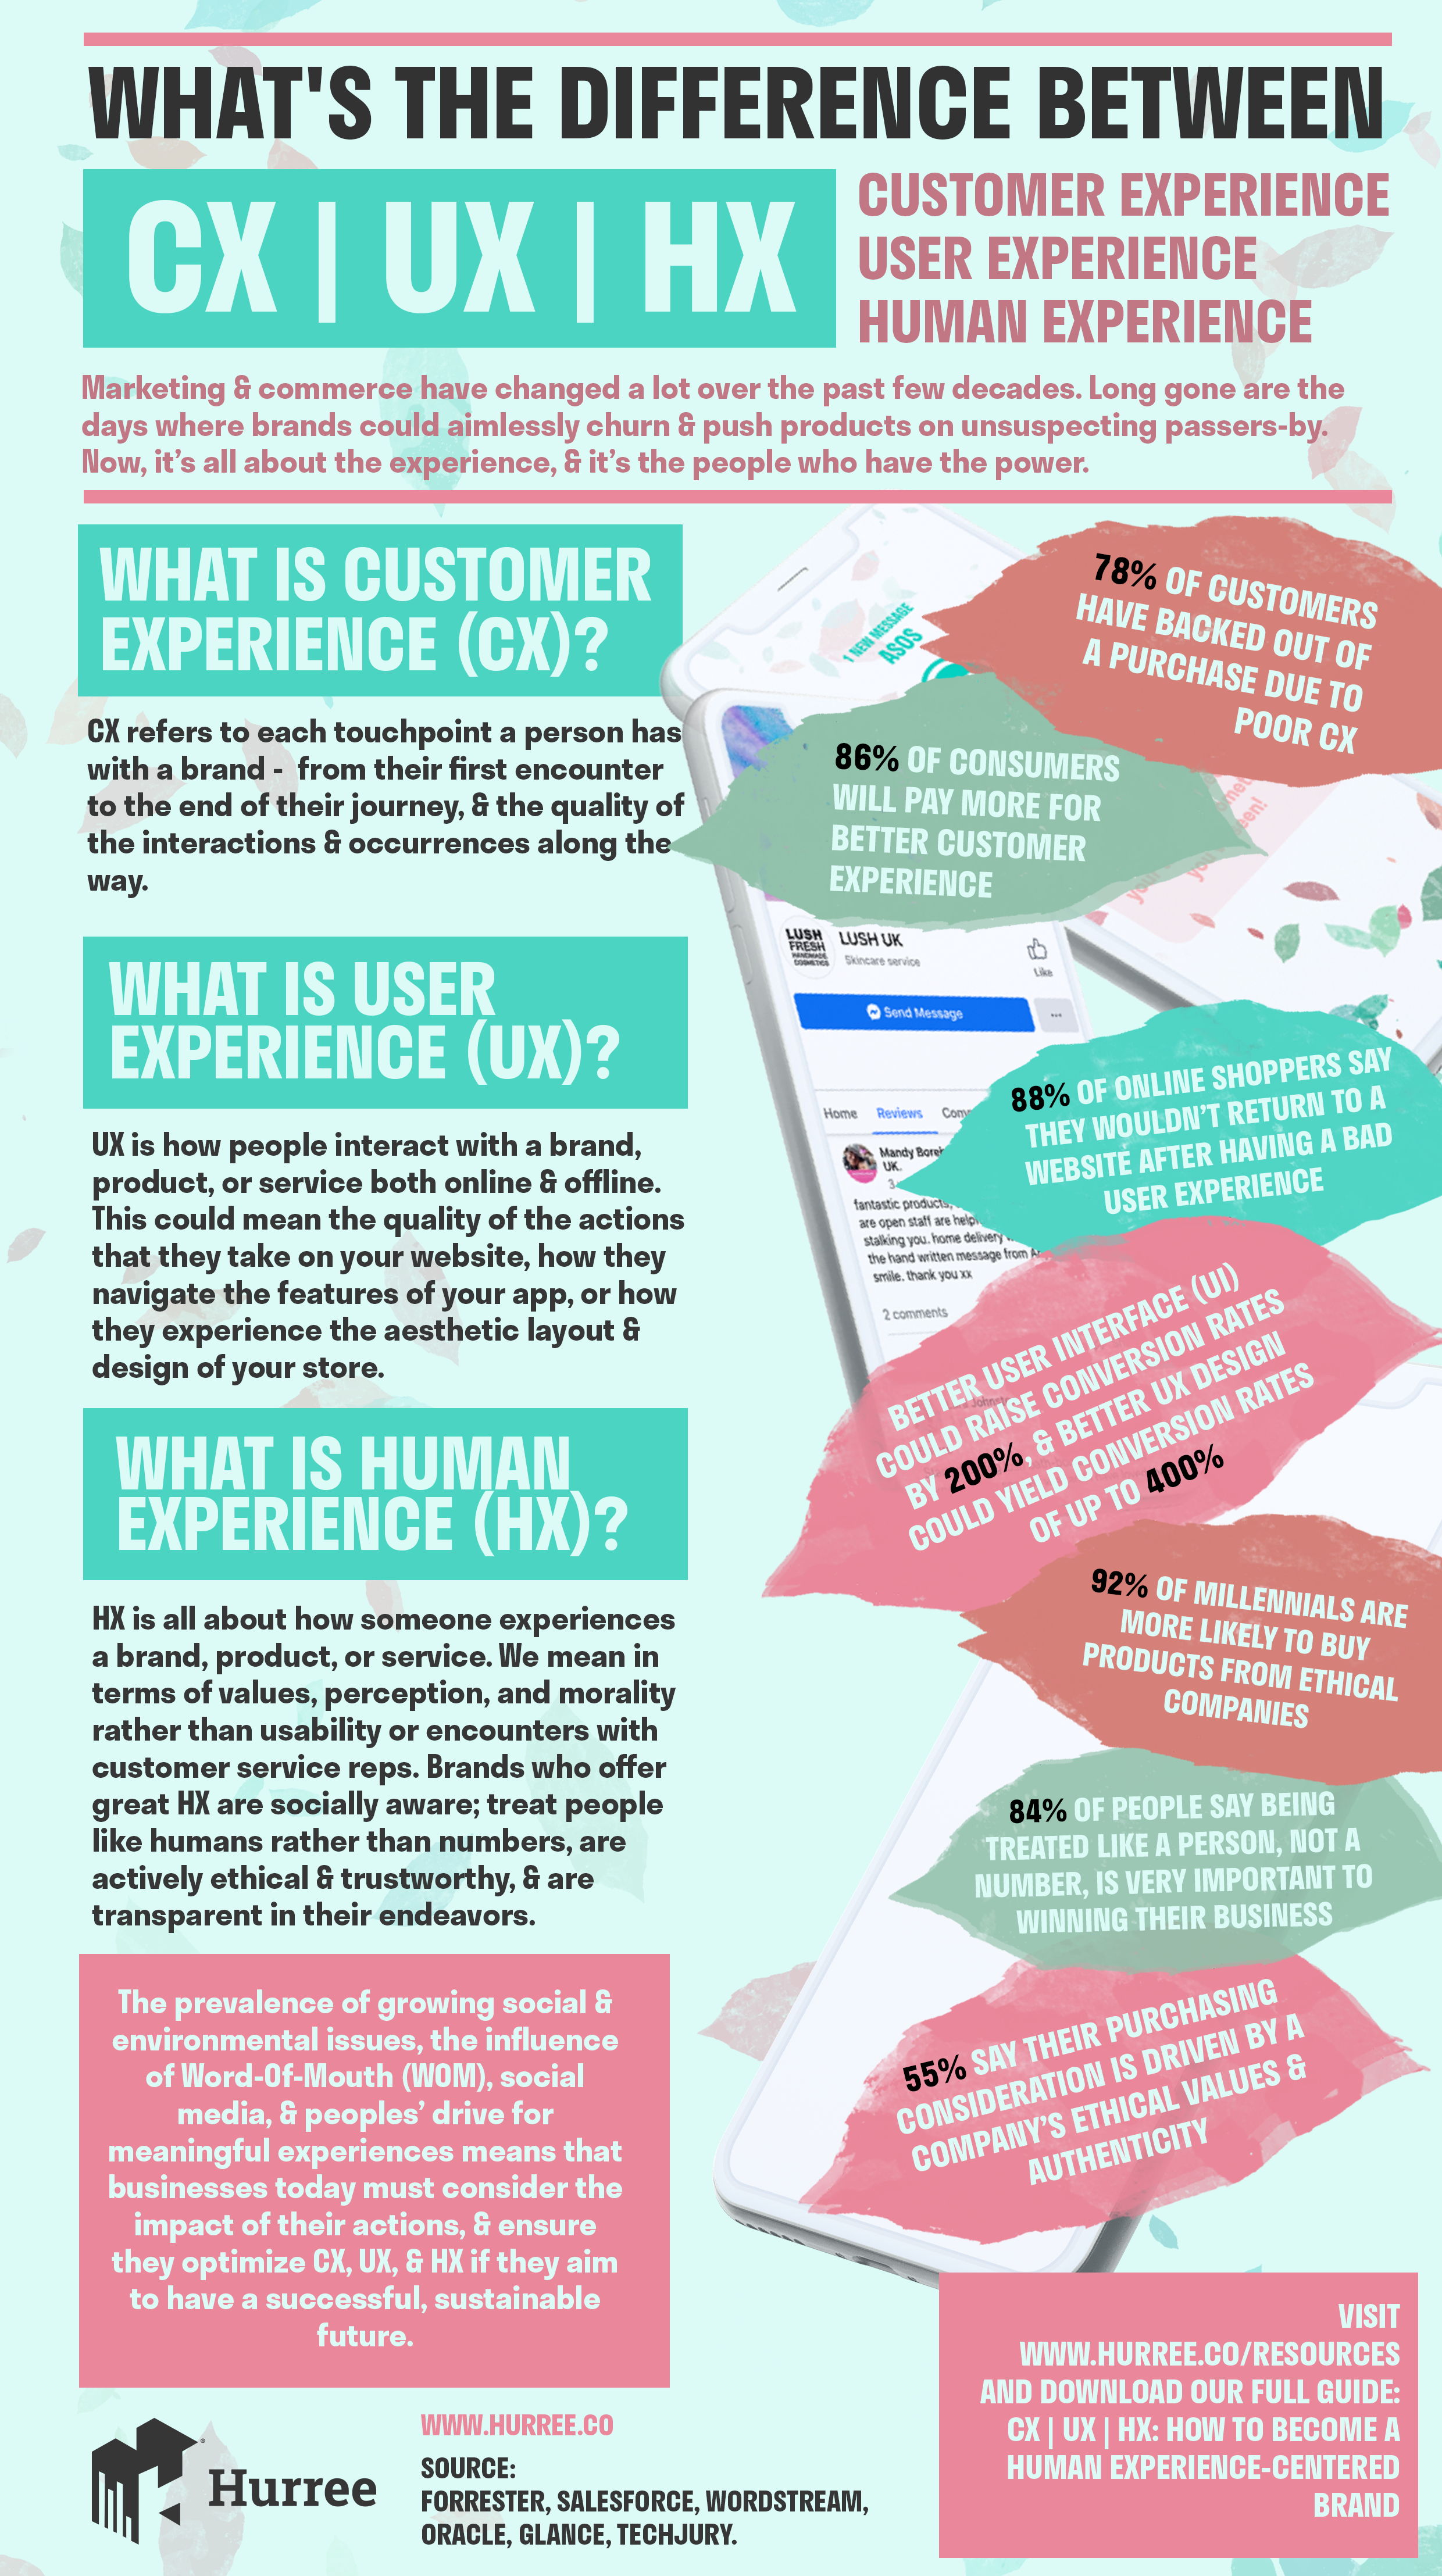 Hurree. Infographic. What's the difference between customer experience (CX), user experience (UX), and human experience (HX)?